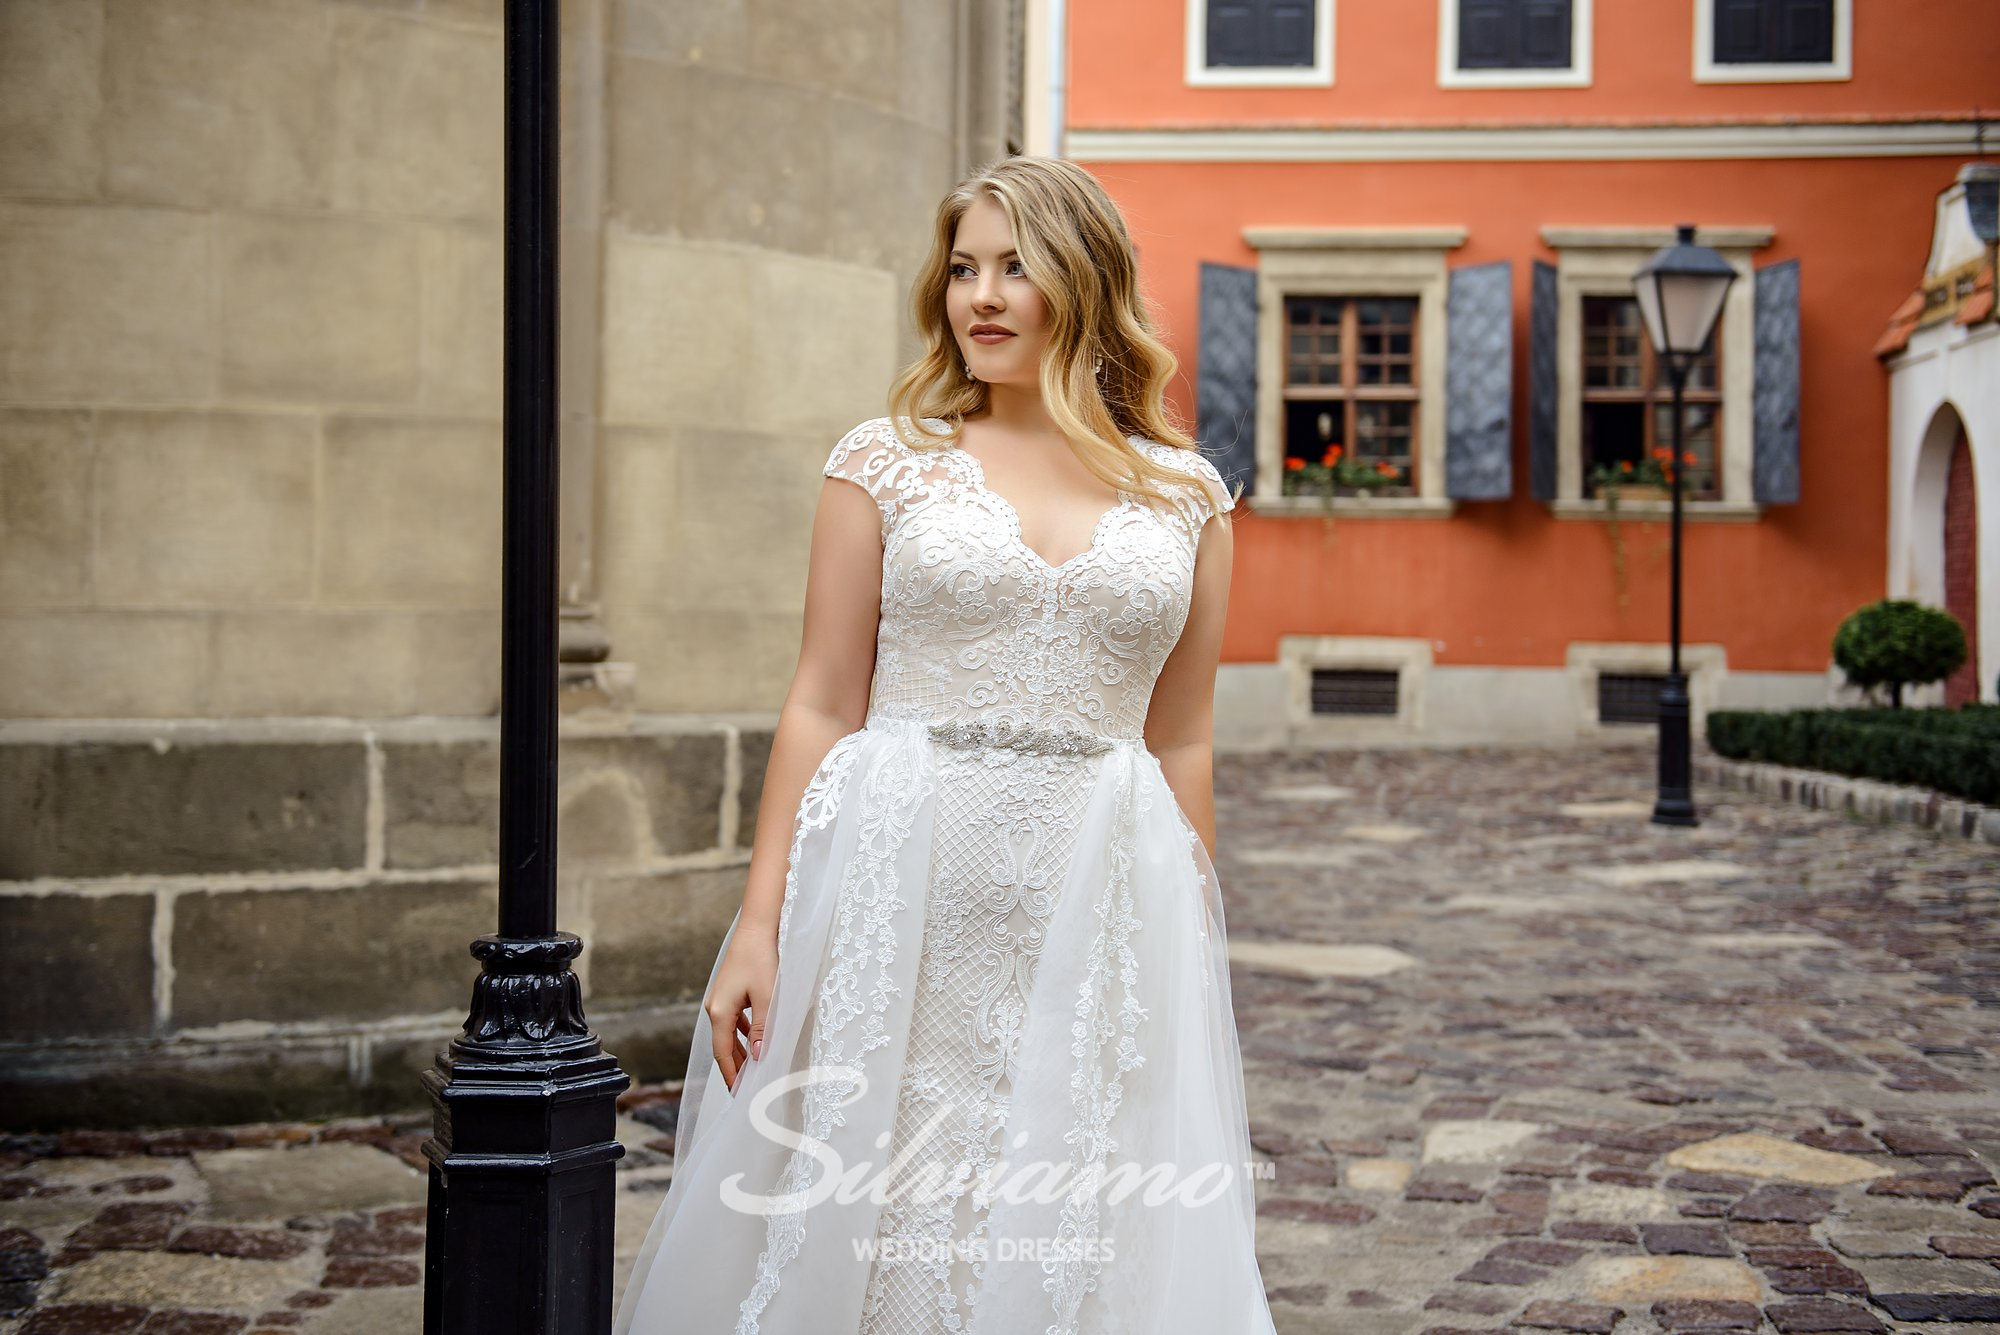 Wedding dresses S-488-Siеna-1